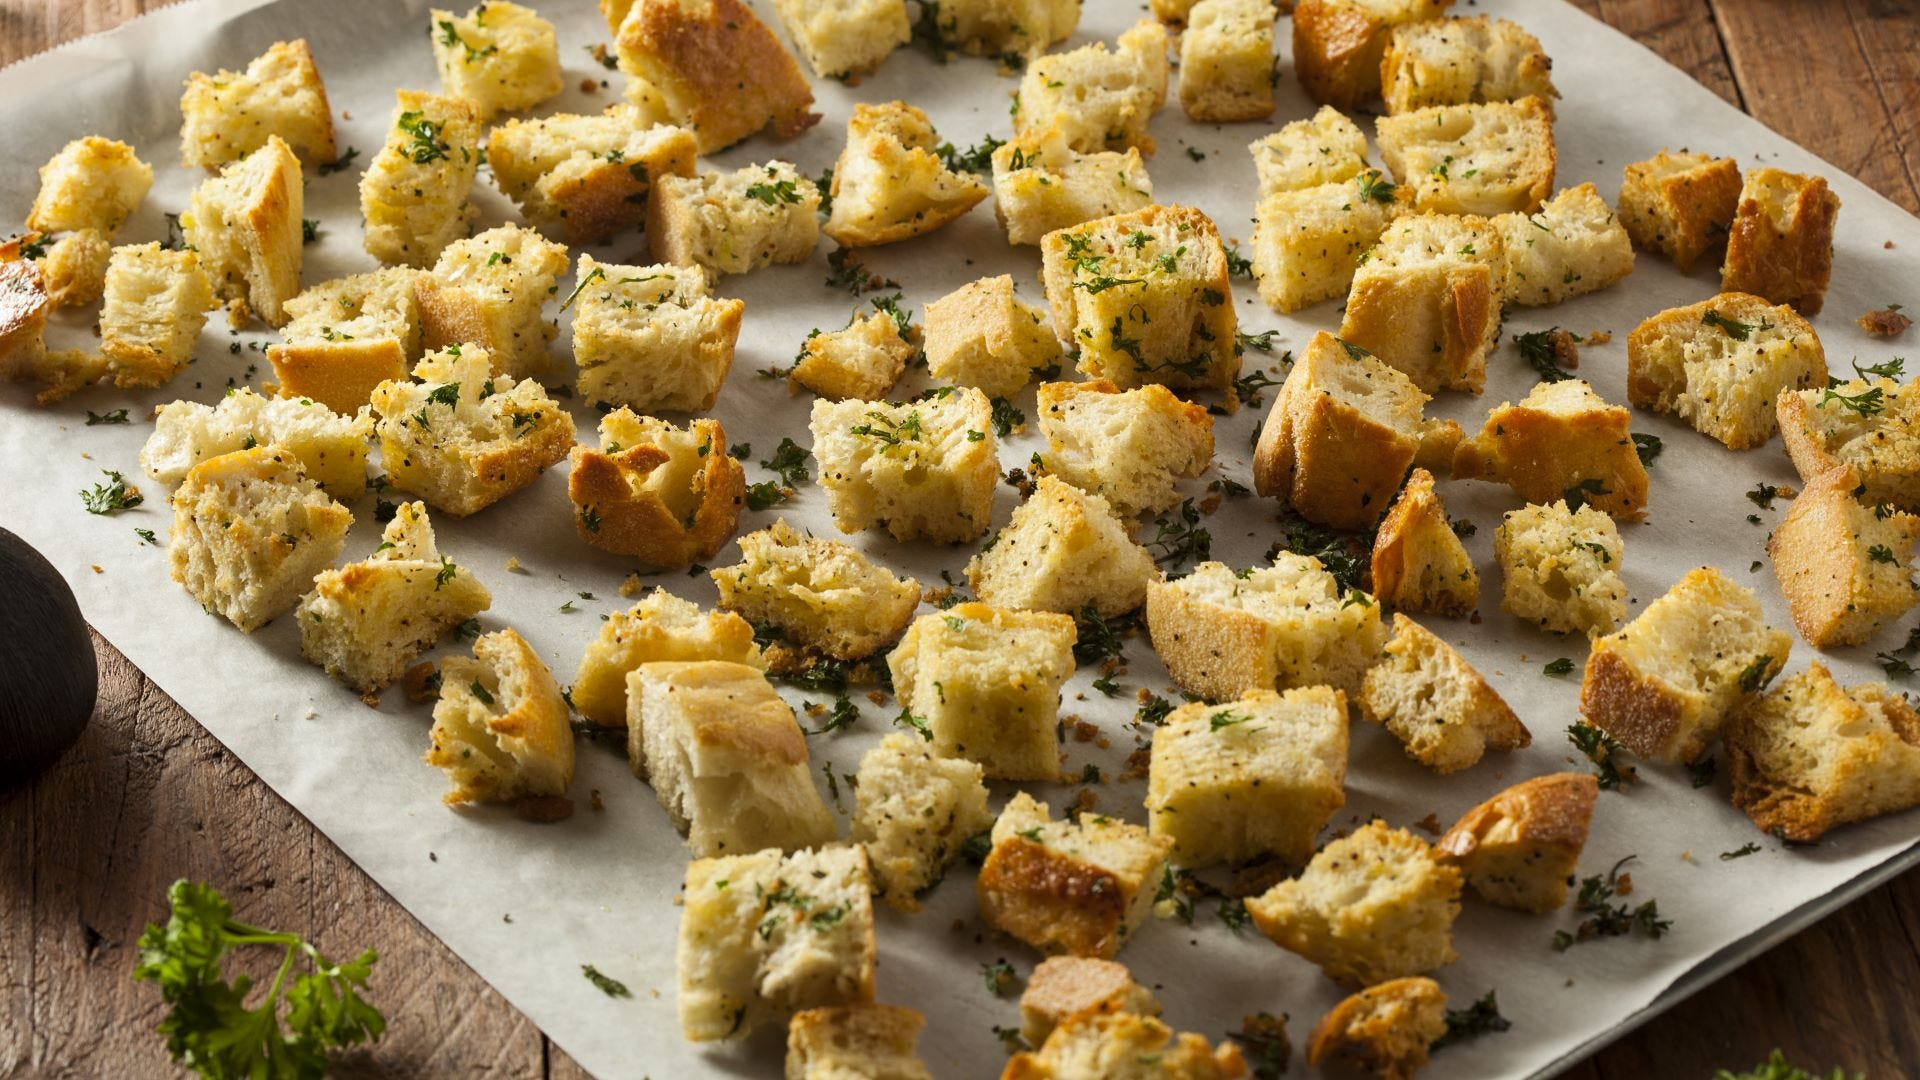 Seasoned homemade croutons on a sheet of parchment paper.